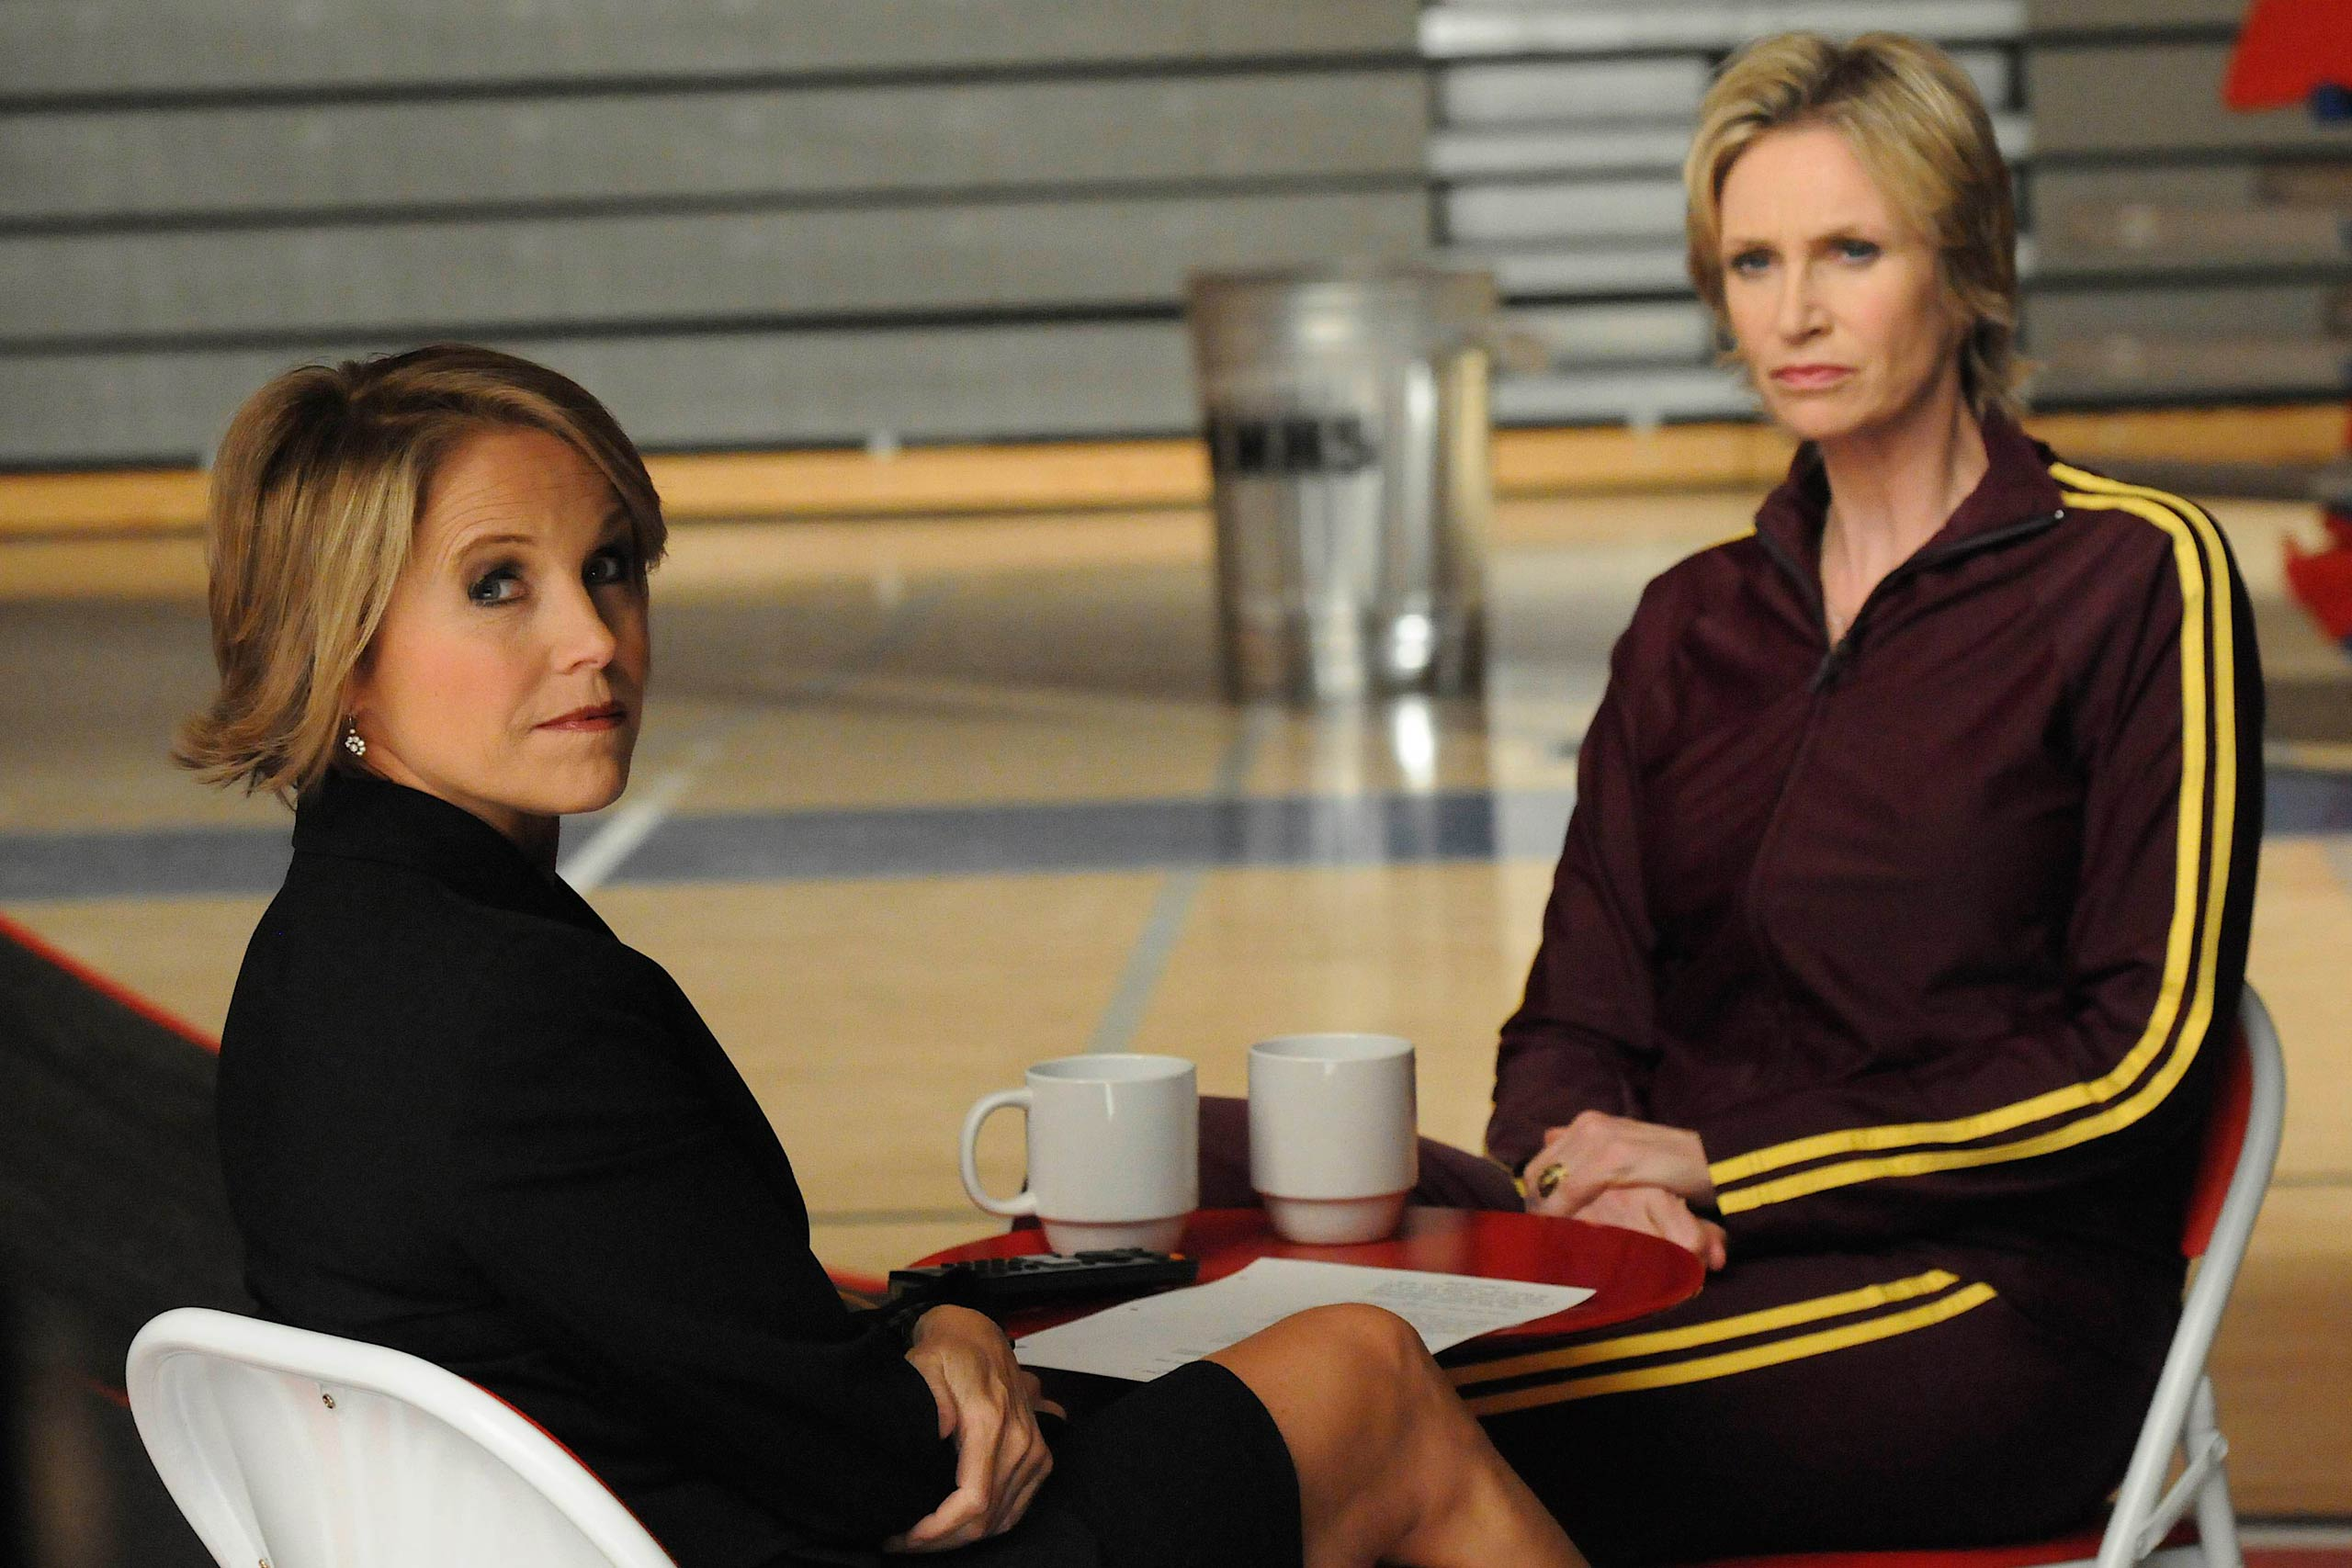 Katie Couric as herself